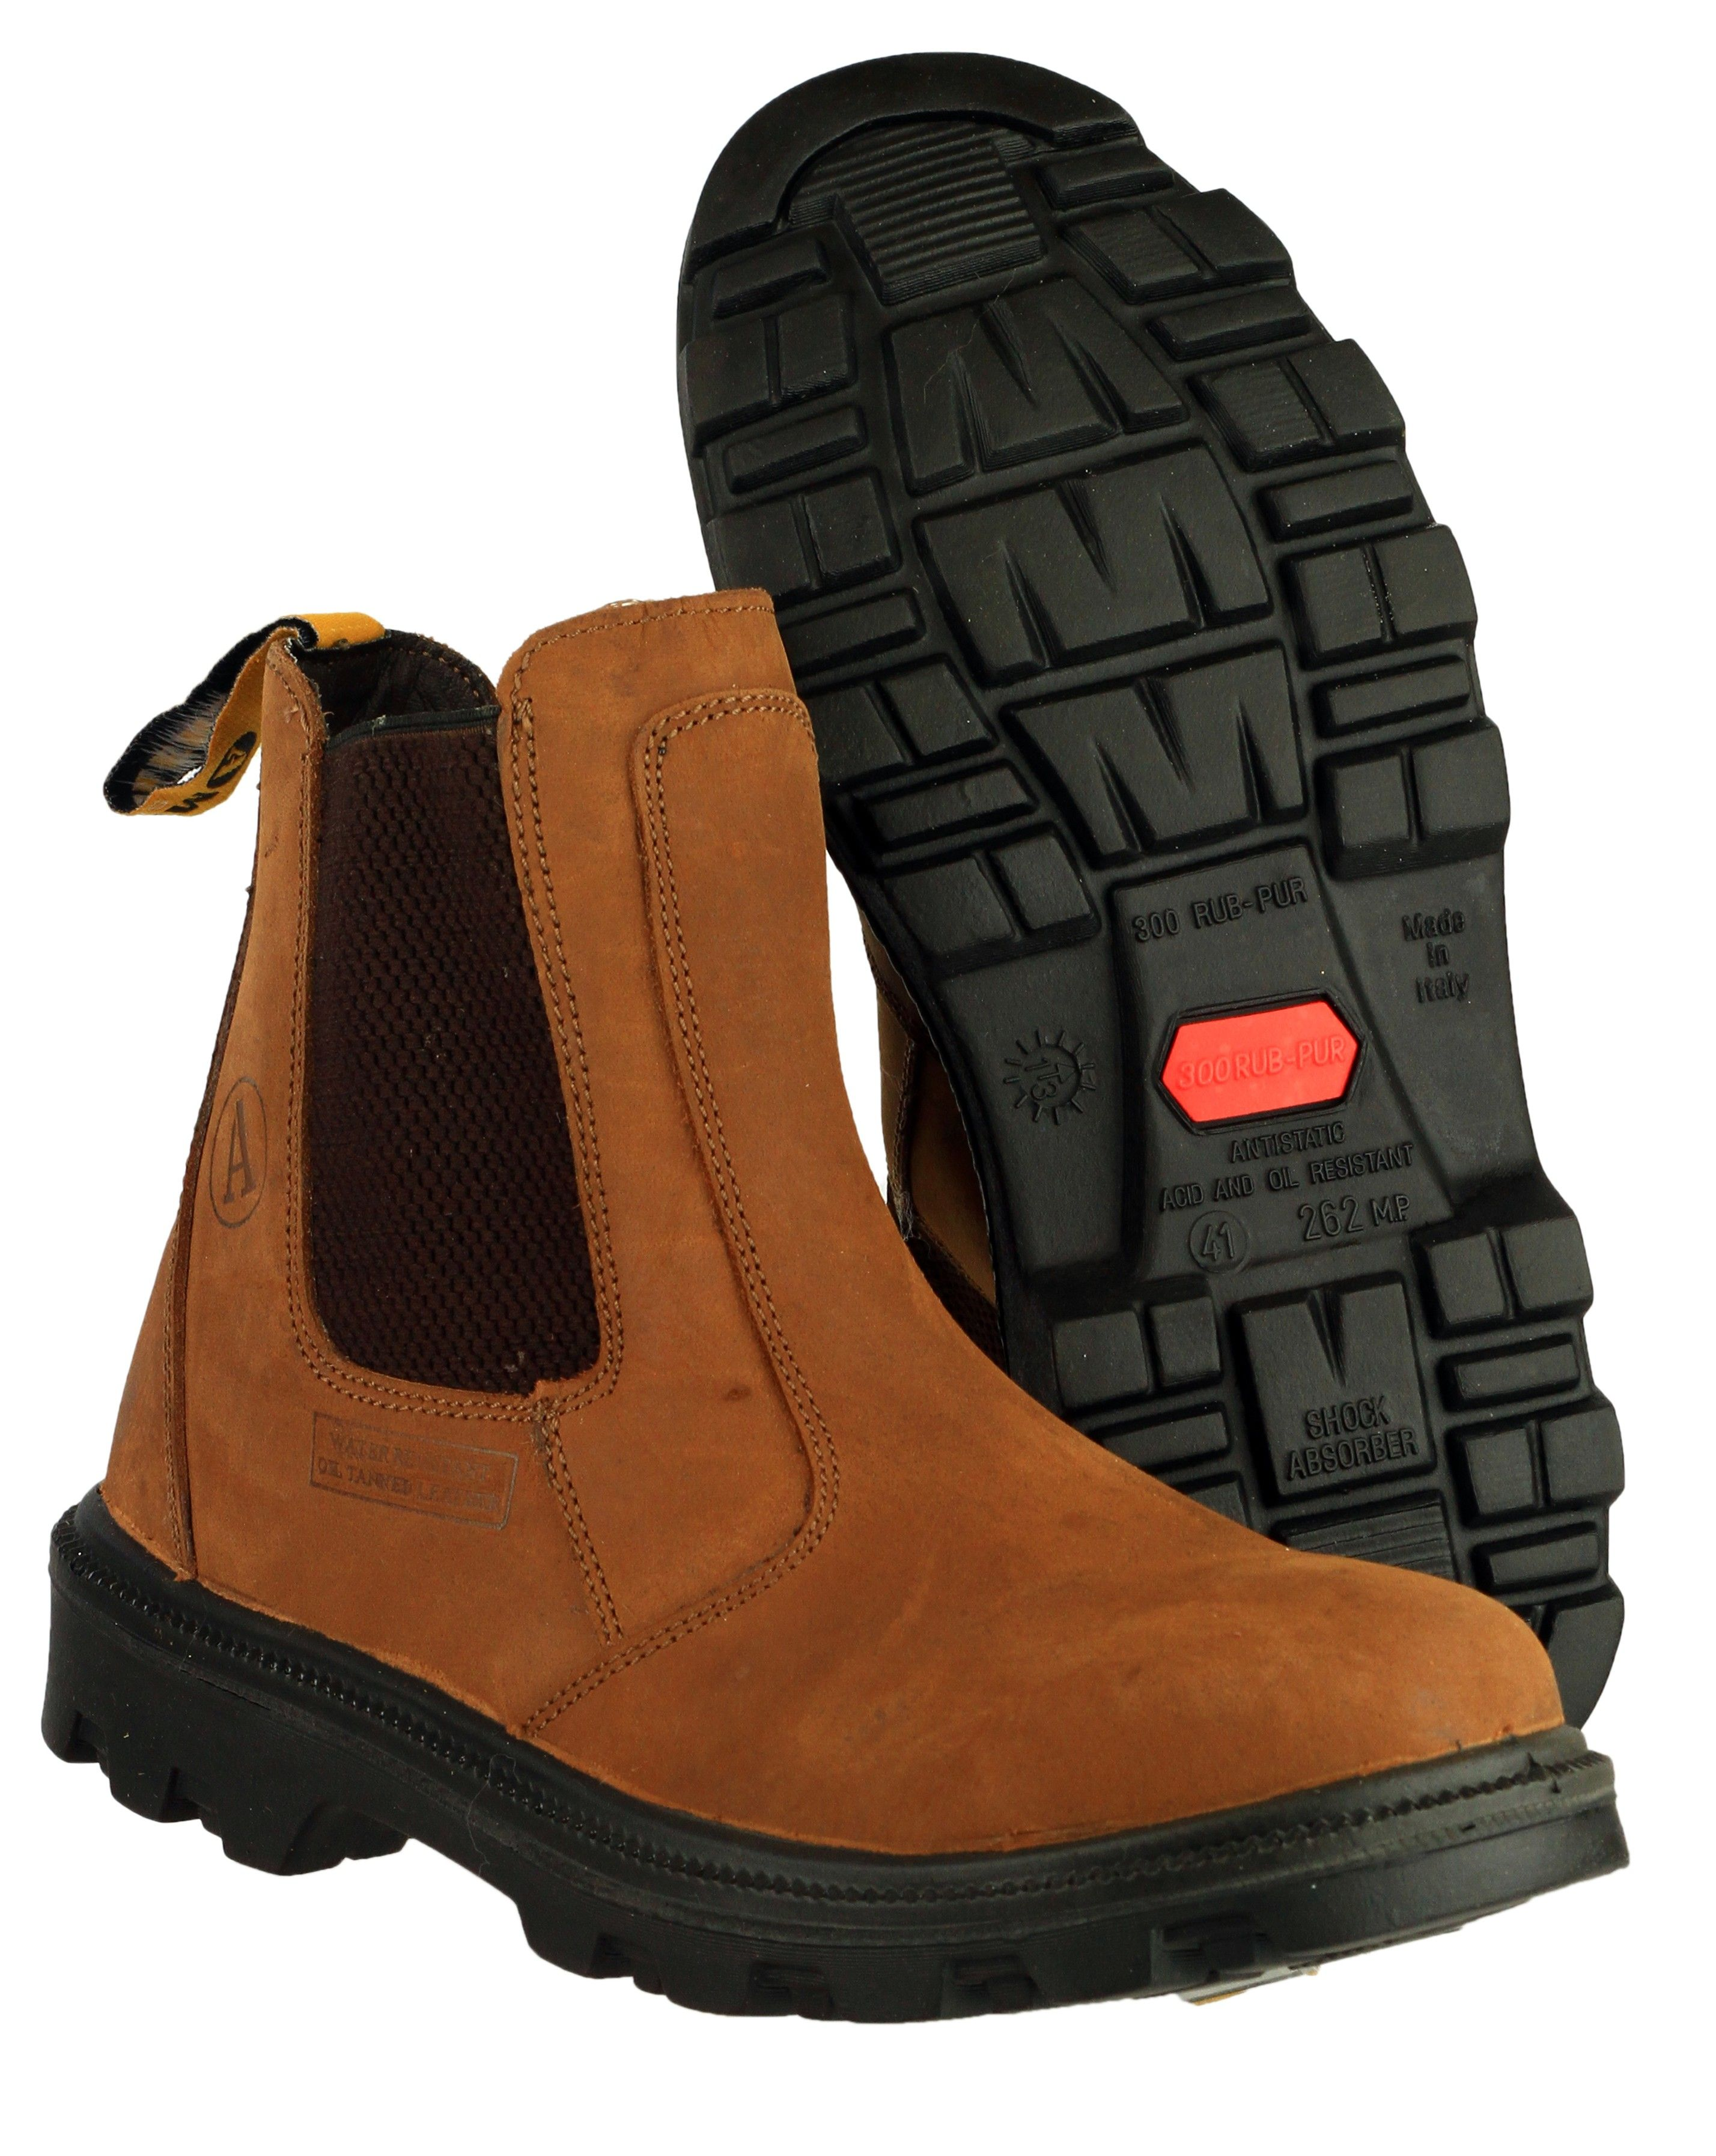 0e6d2ead6df Pin by Amblers Safety on Amblers Safety Dealer Boots | Steel toe ...